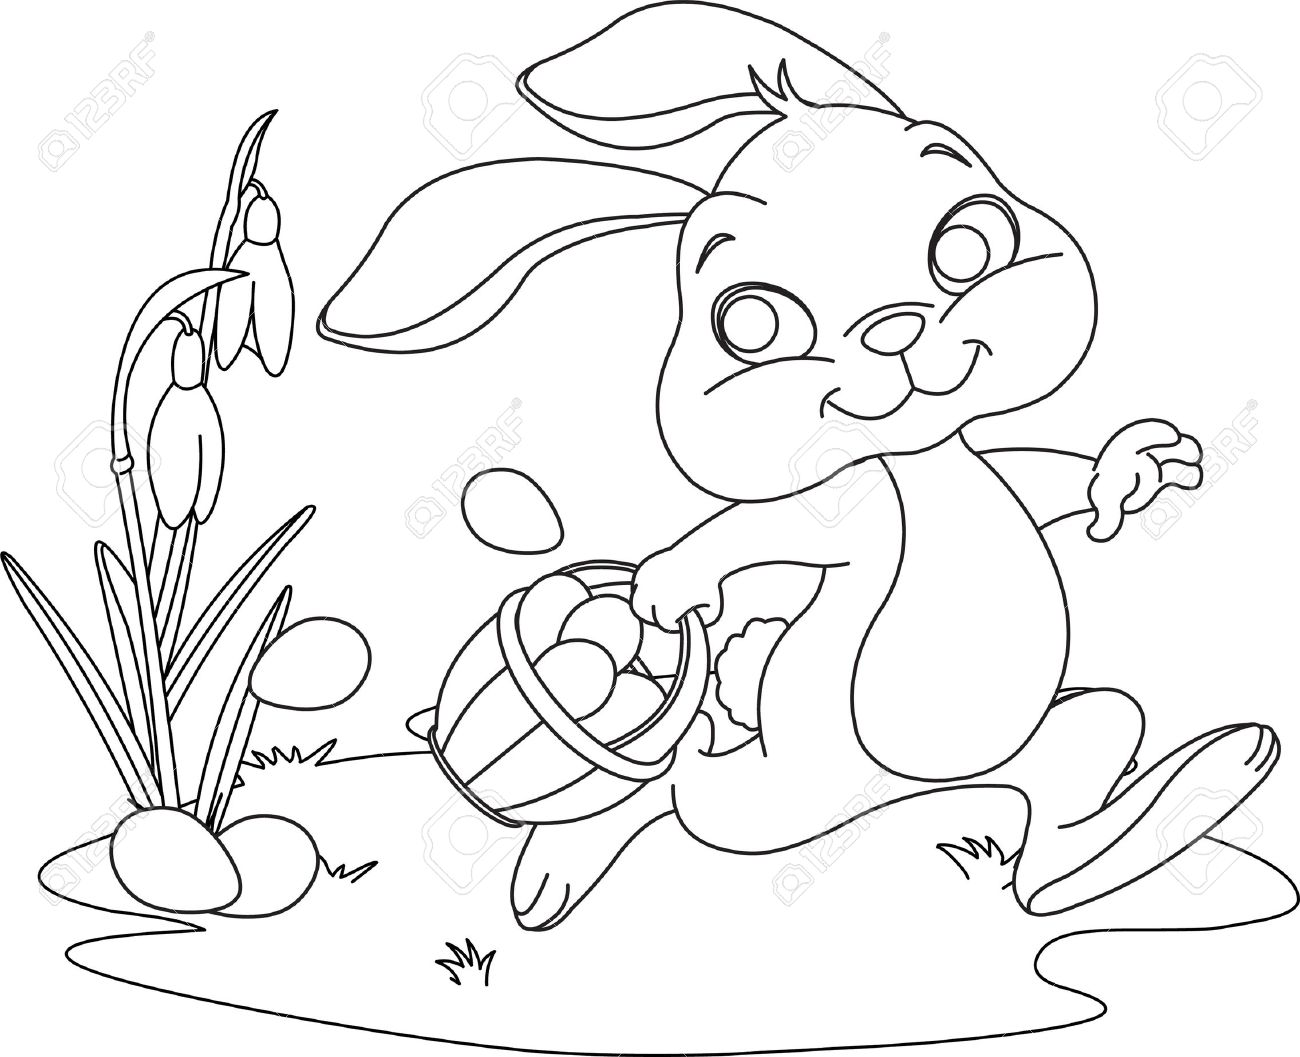 Cute Easter Bunny Hiding Eggs Coloring Page Royalty Free Cliparts